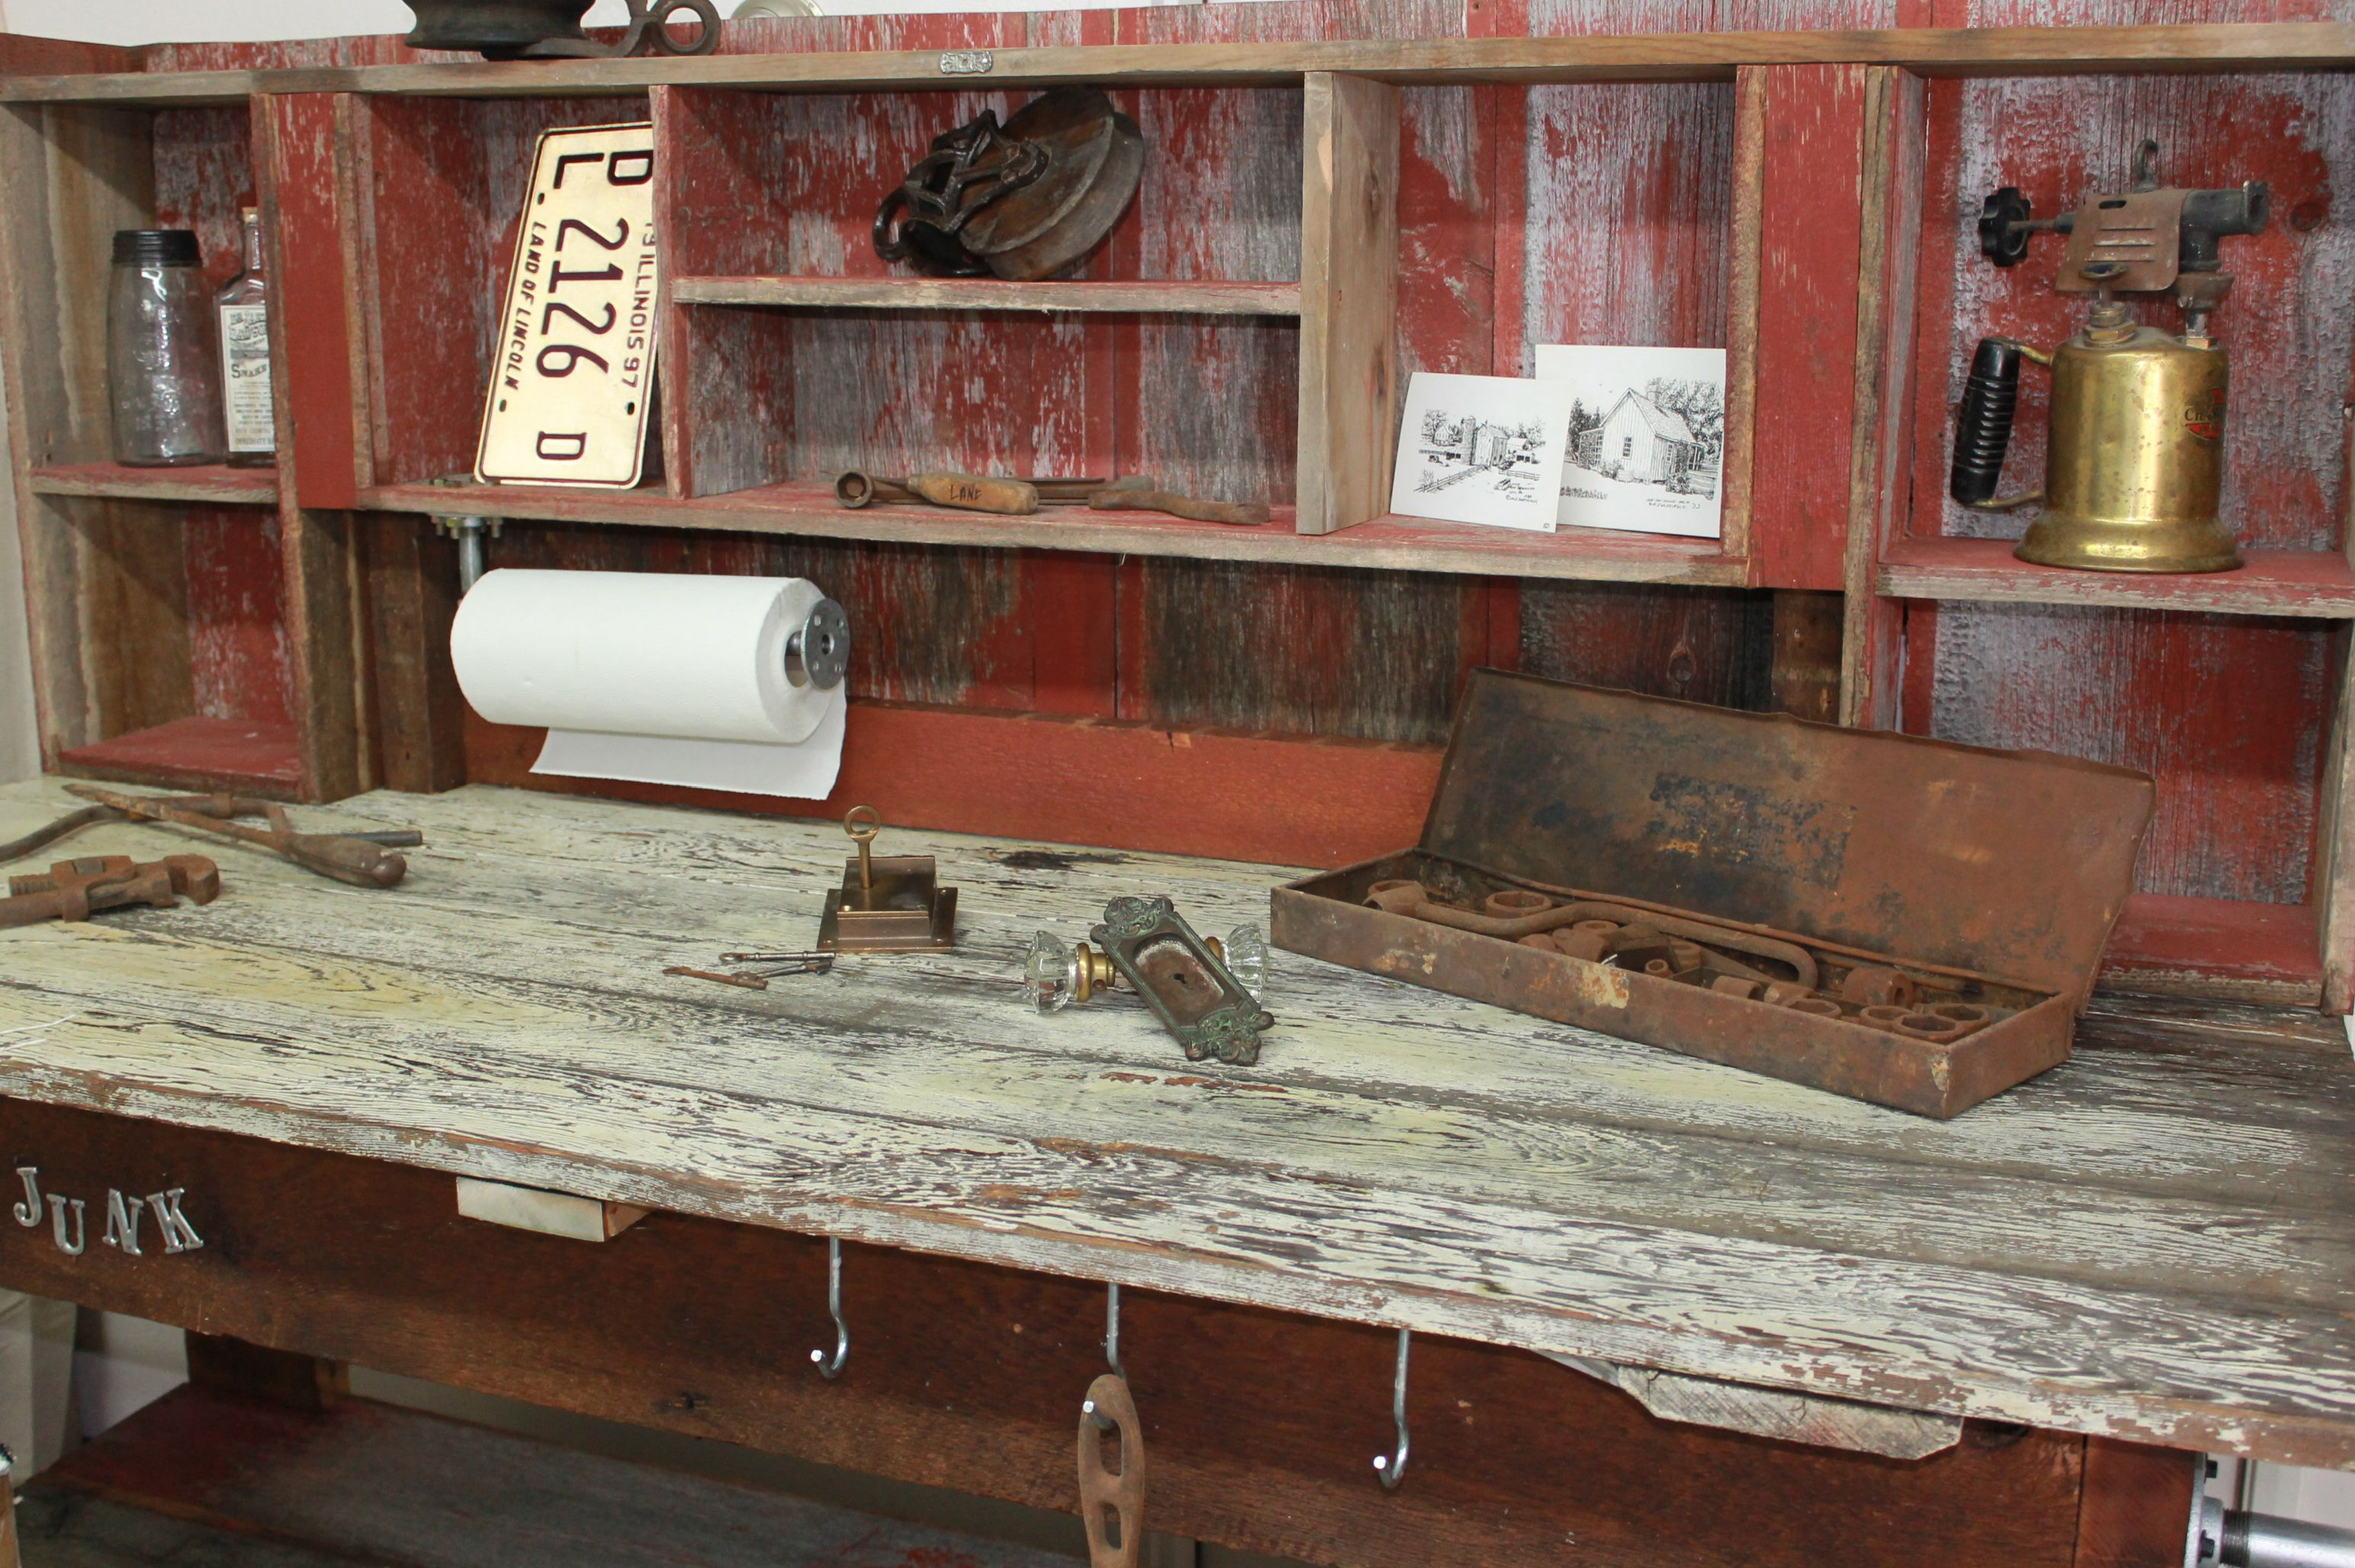 Work Bench Made From Salvaged Barn Wood Barn Door And Timber From A 100 Year Old Home Man Style Could Also Be A Barn Wood Repurposed Items Potting Bench